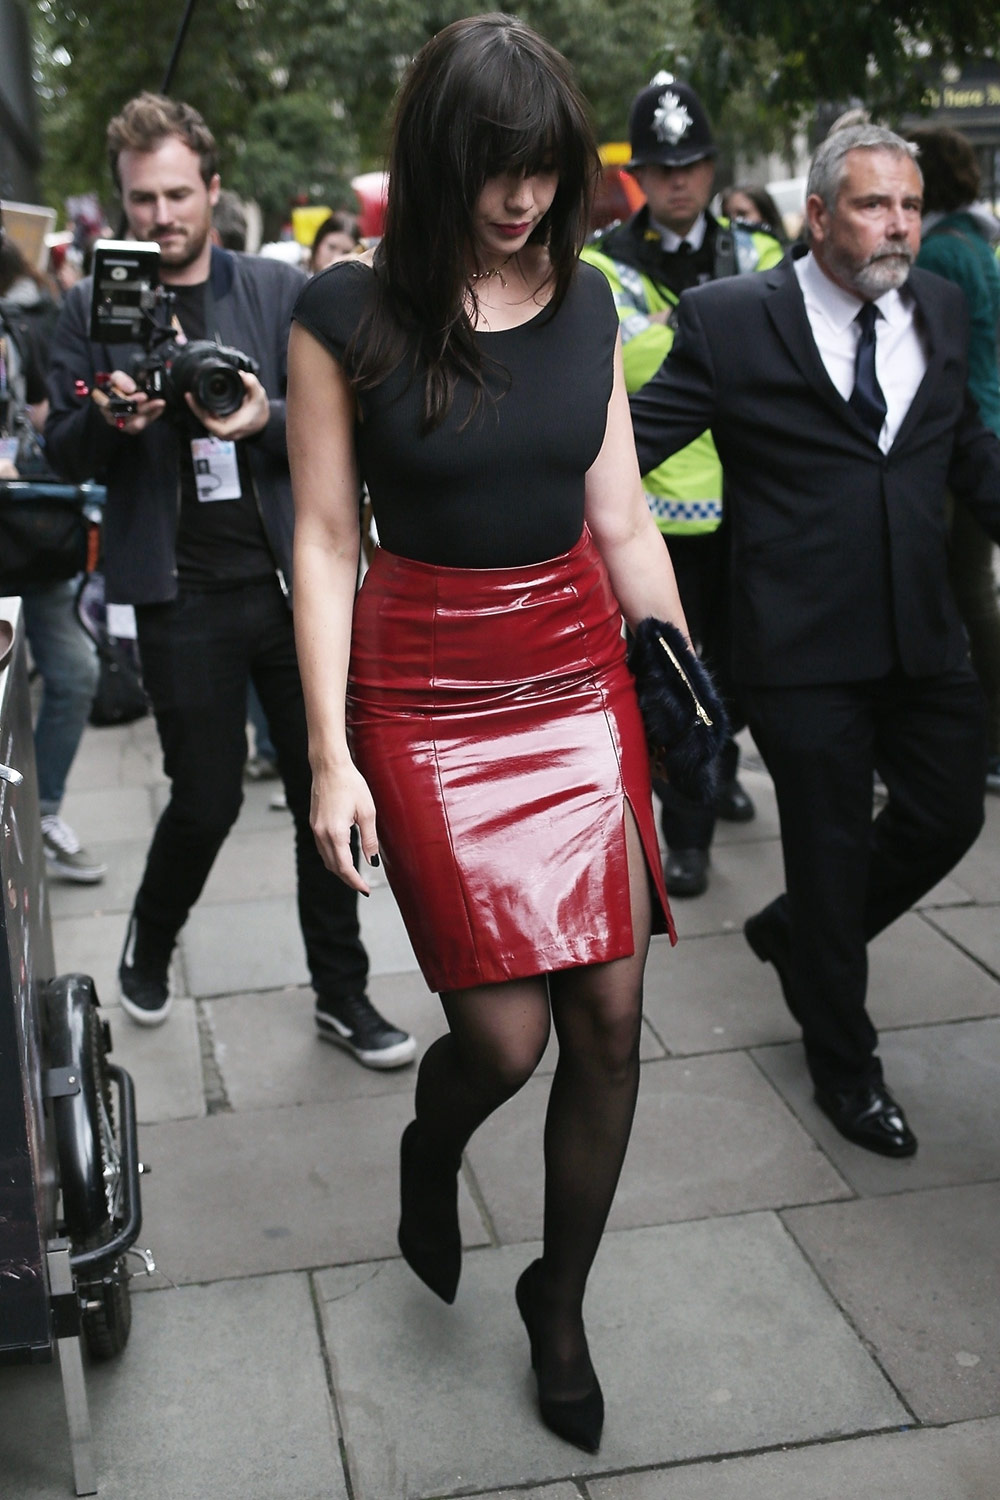 Daisy Lowe spotted leaving the Eudon Choi fashion show